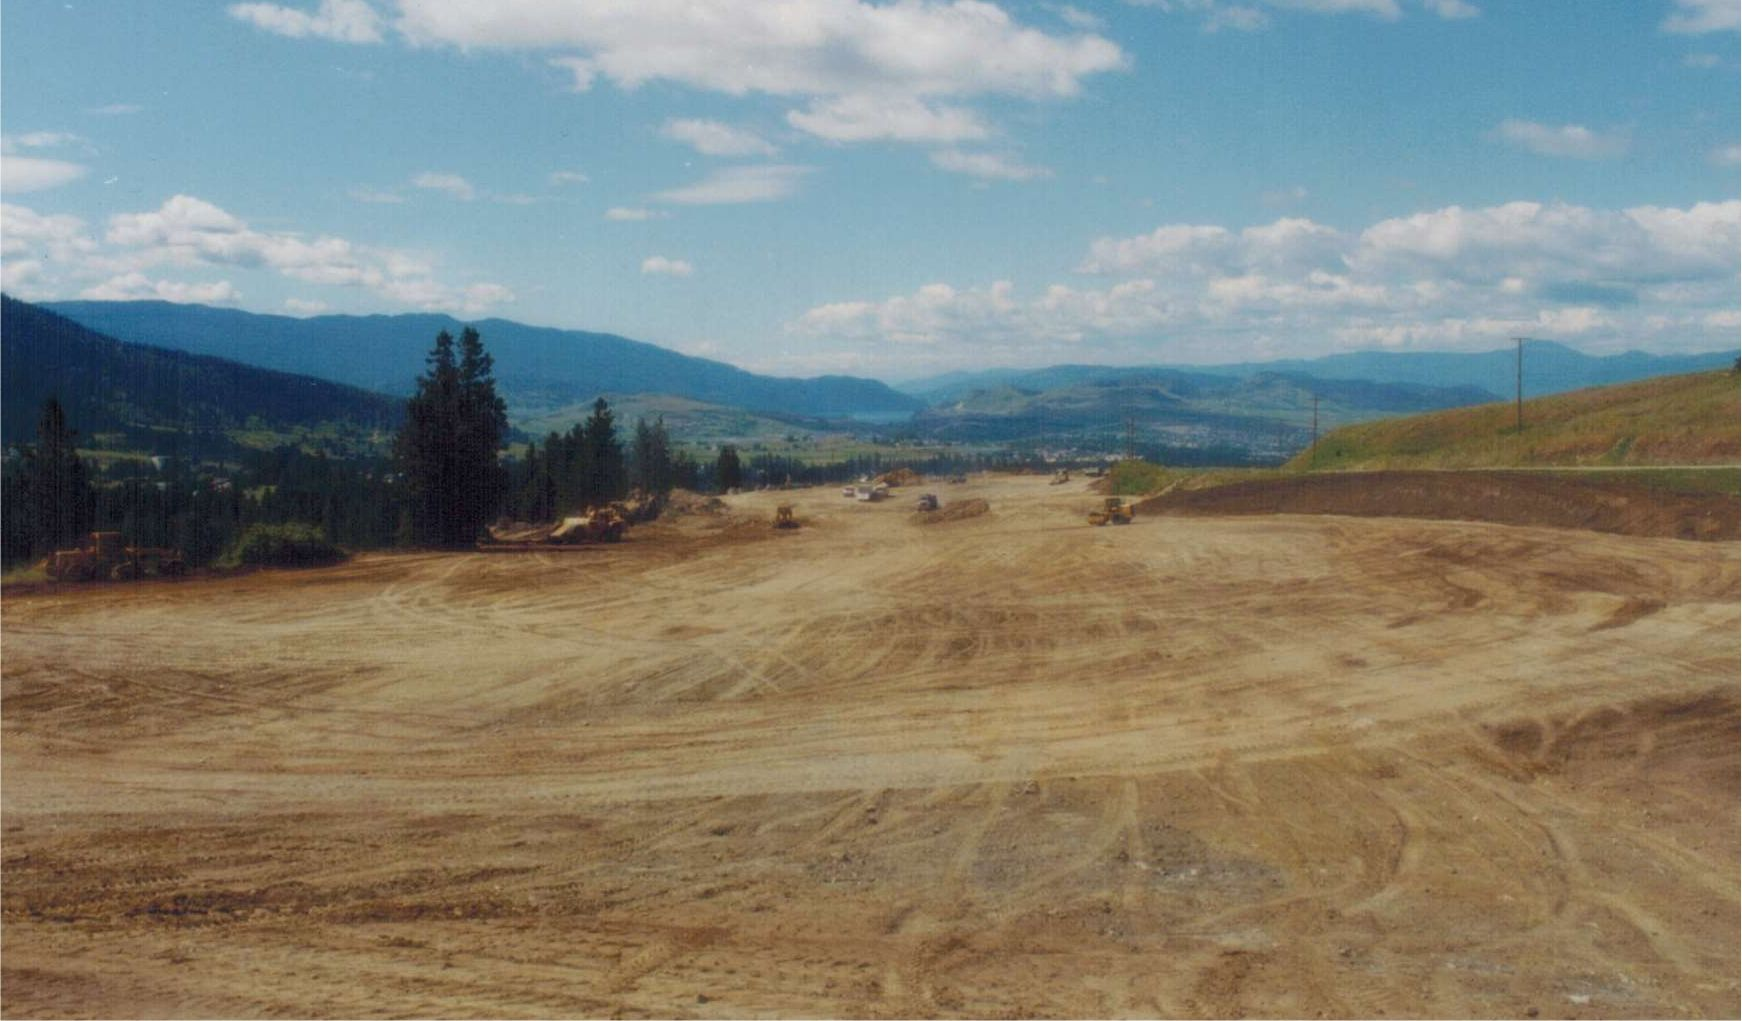 Main Photo: Lot 1 Manning Place in Vernon: Foothills Vacant Land for sale (North Okanagan)  : MLS®# 10218091